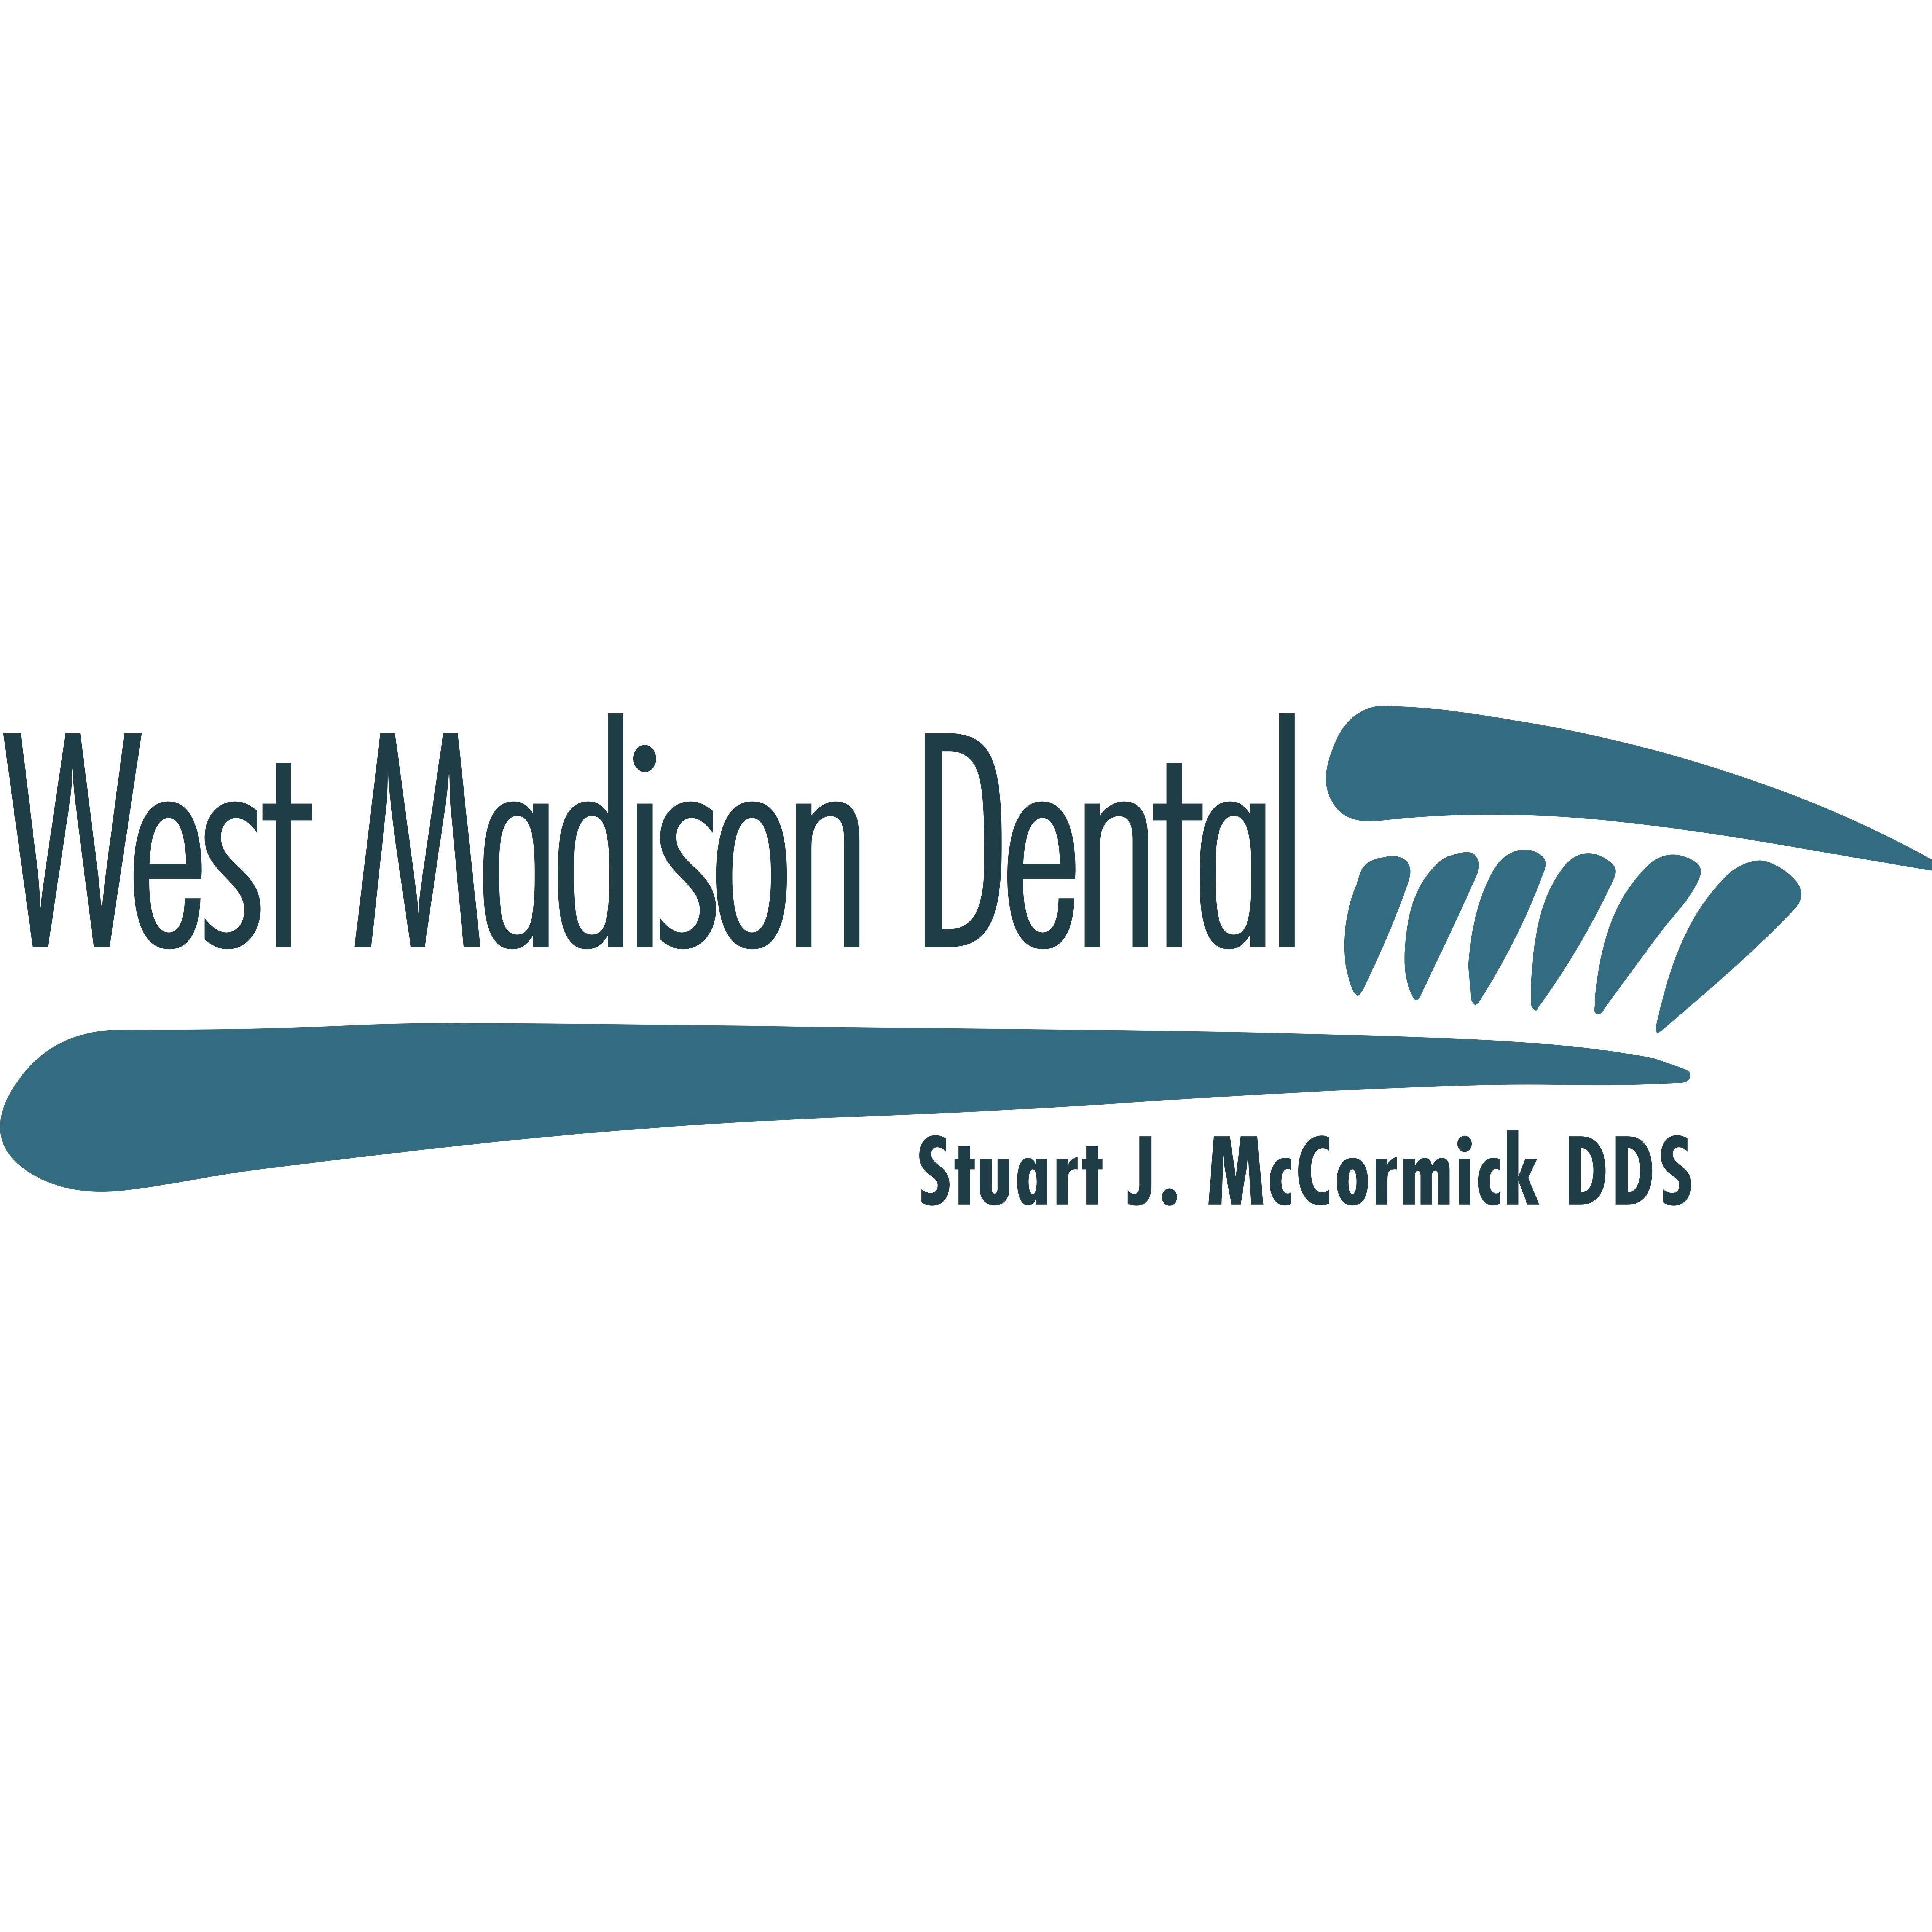 West Madison Dental